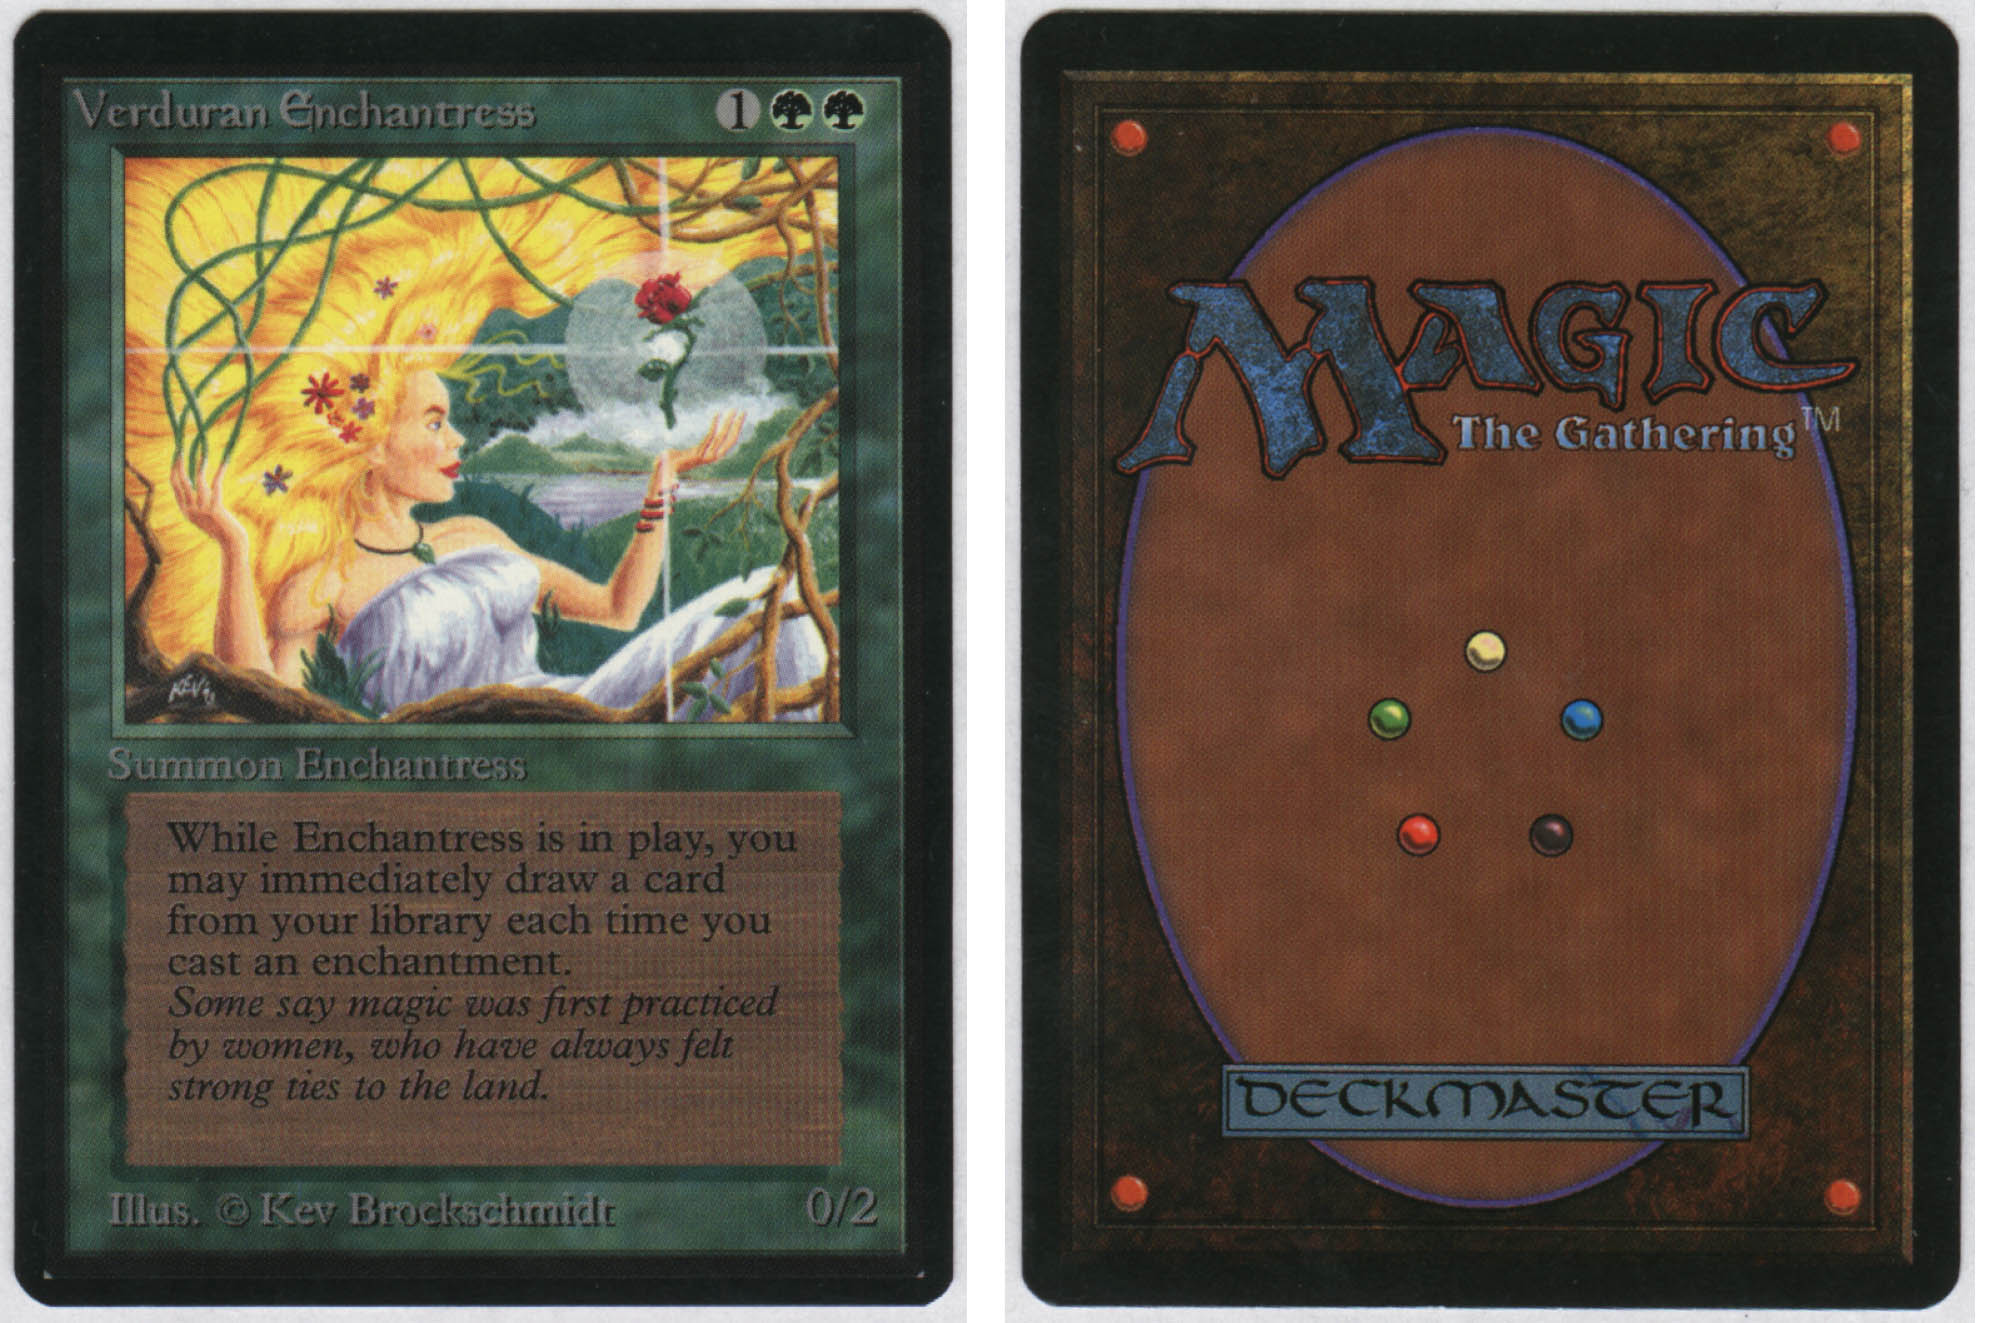 Magic The Gathering Abugamescom Magic Card Detailed Condition Guide